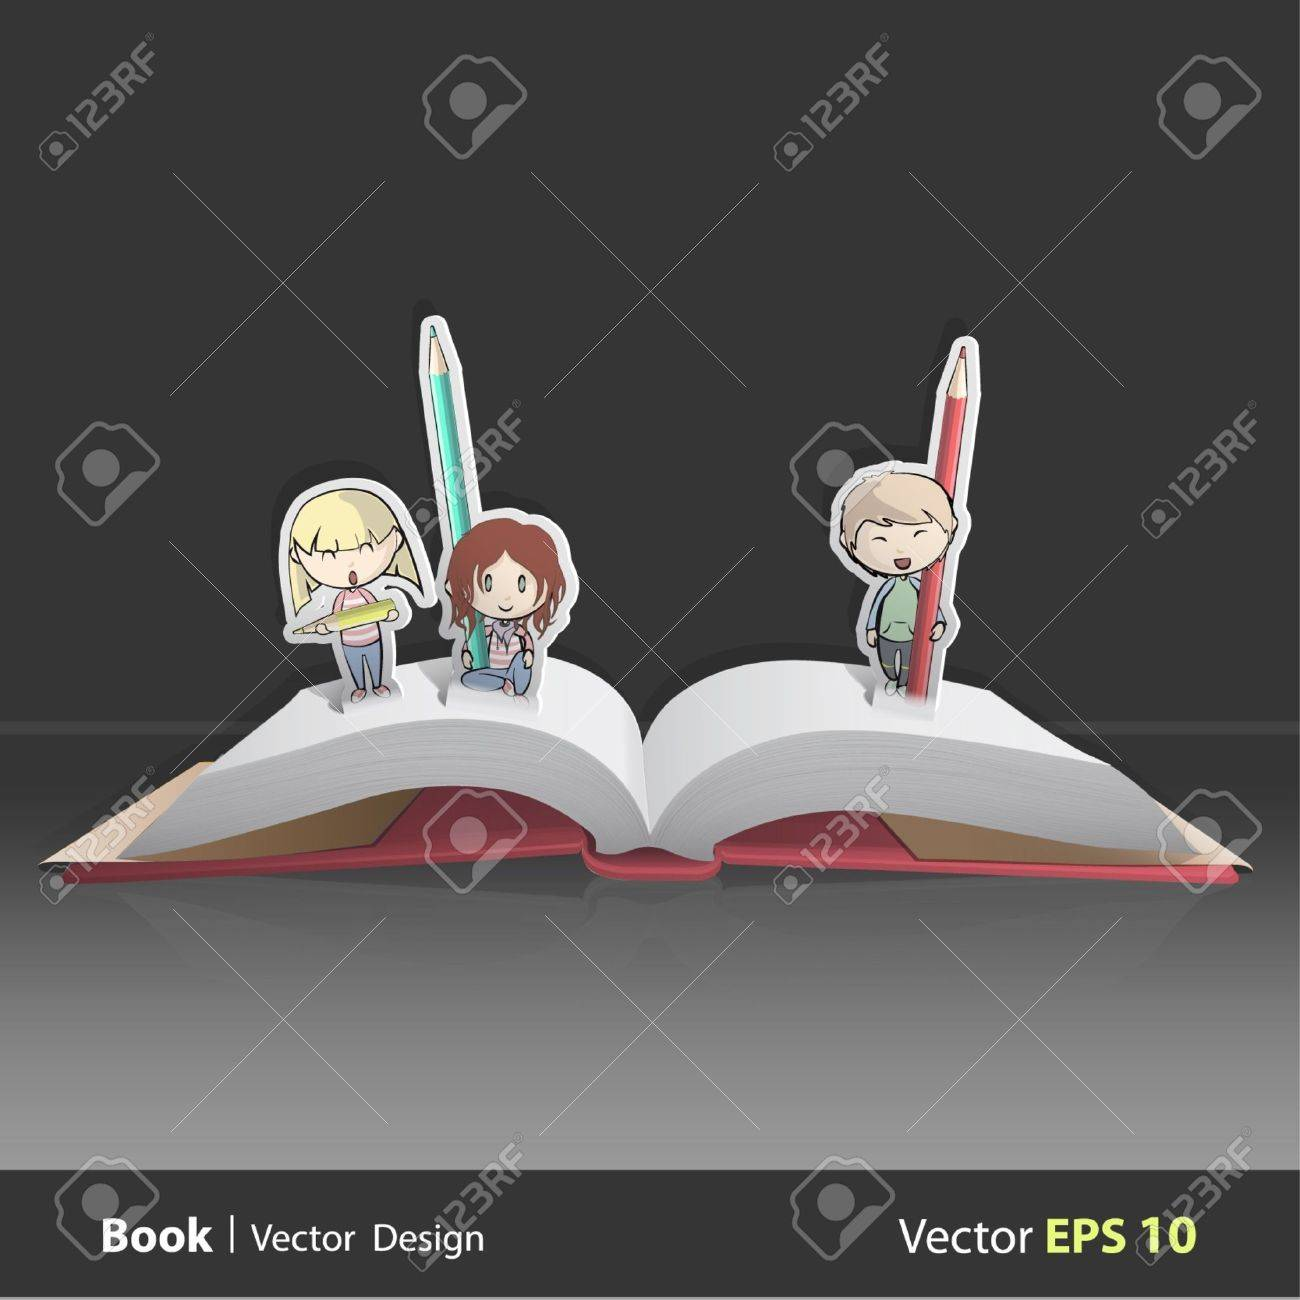 Pop up book with kids. Stock Vector - 16867801